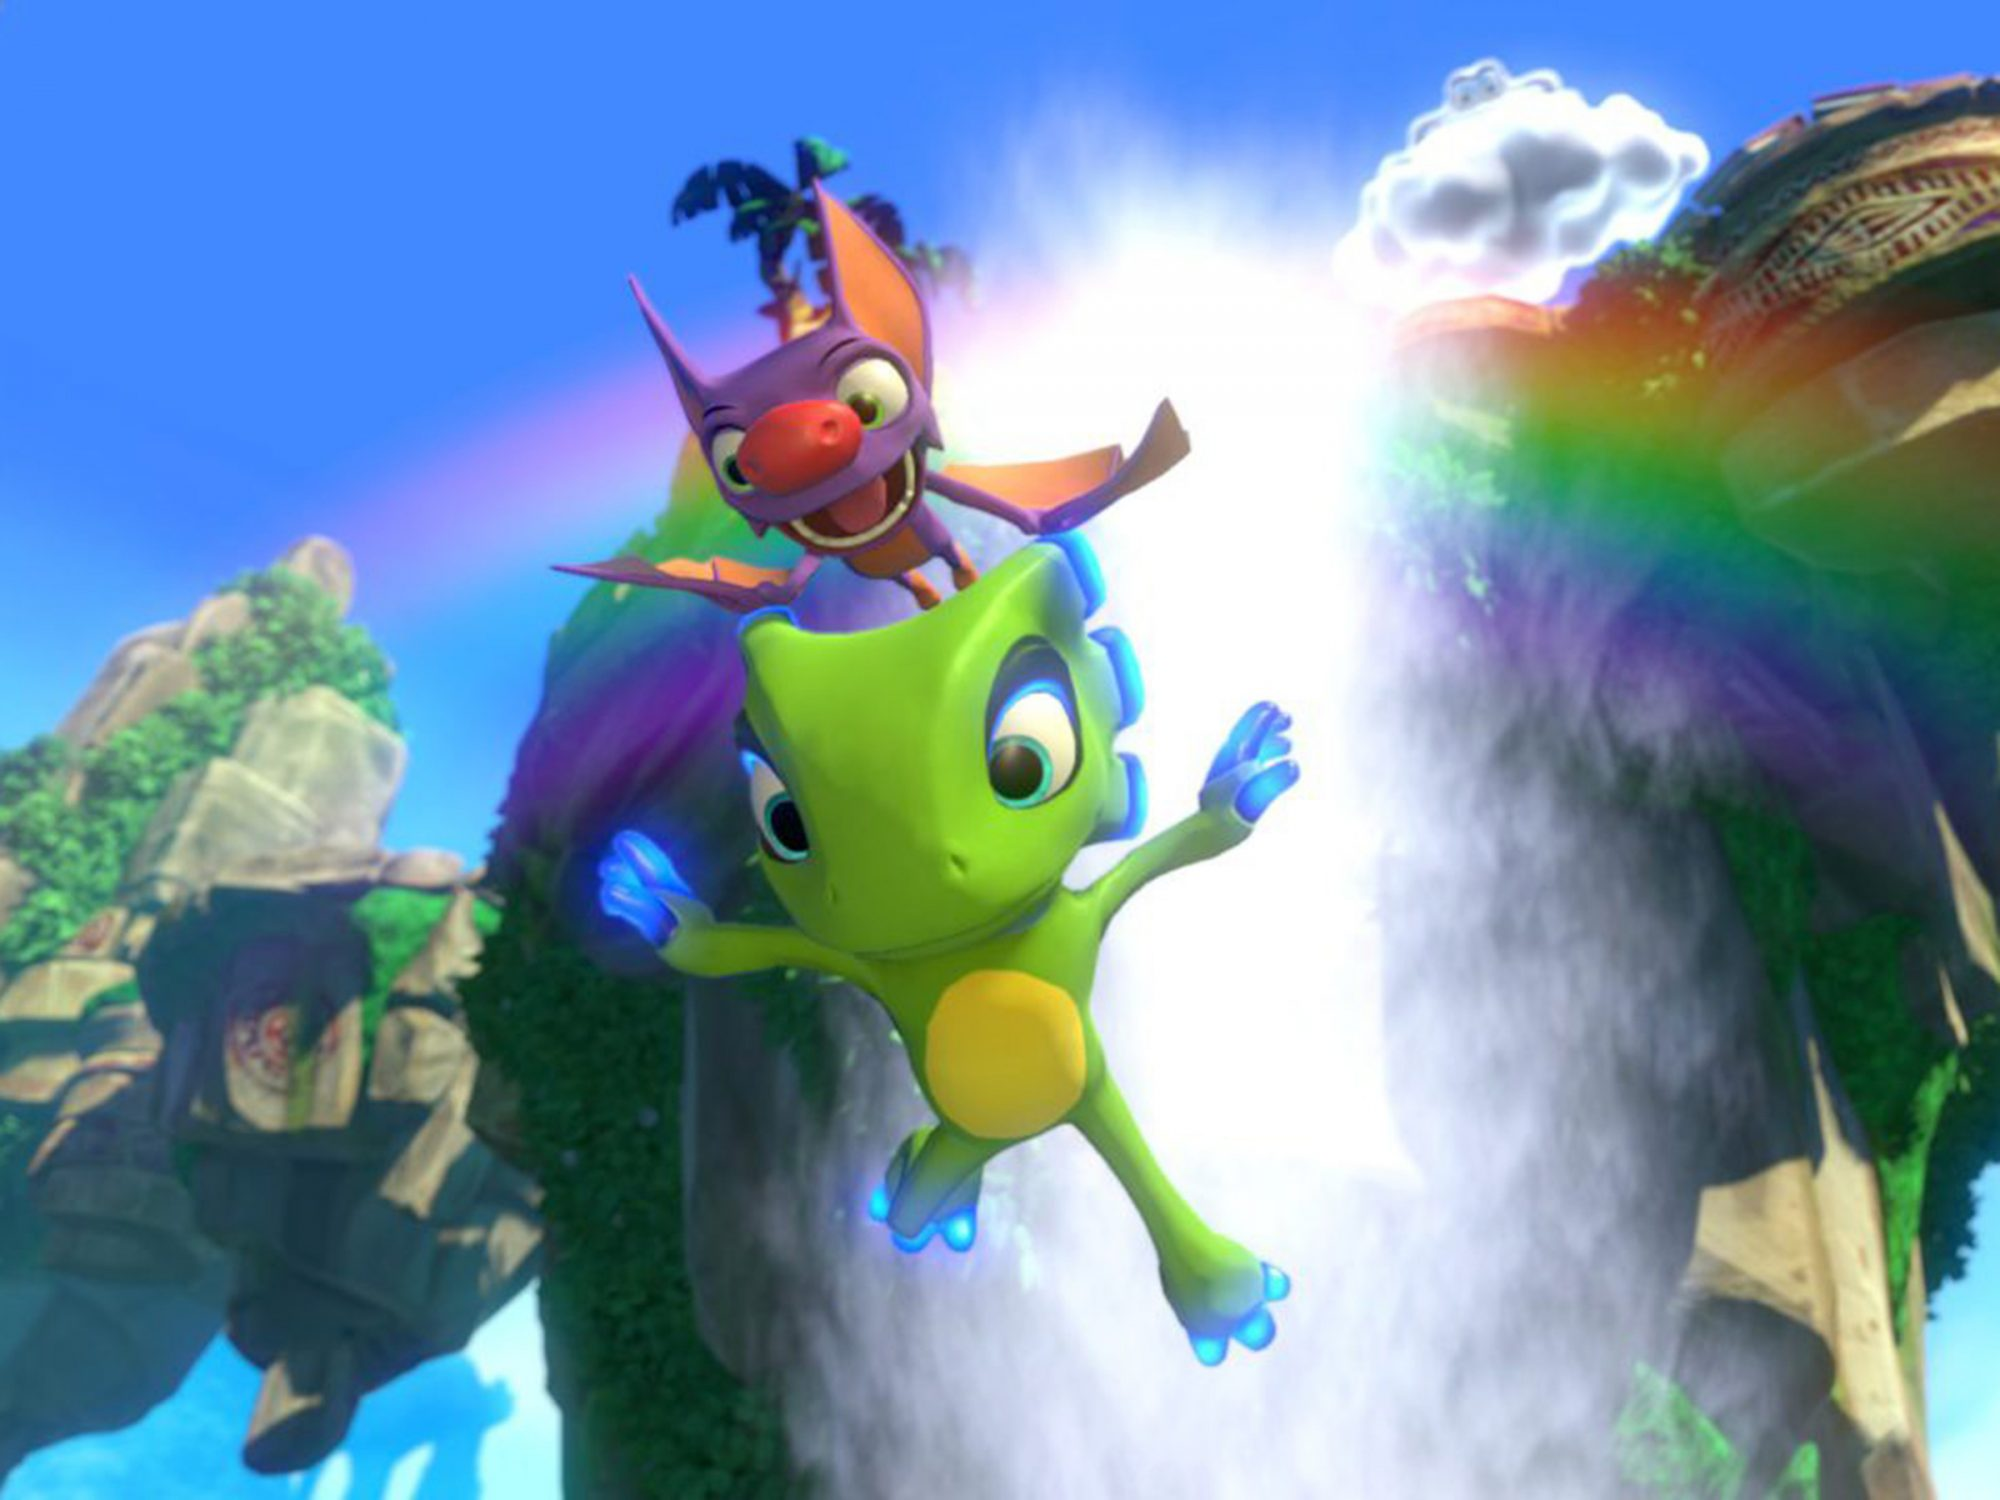 9. Yooka-Laylee (Multiplatform; April 11)